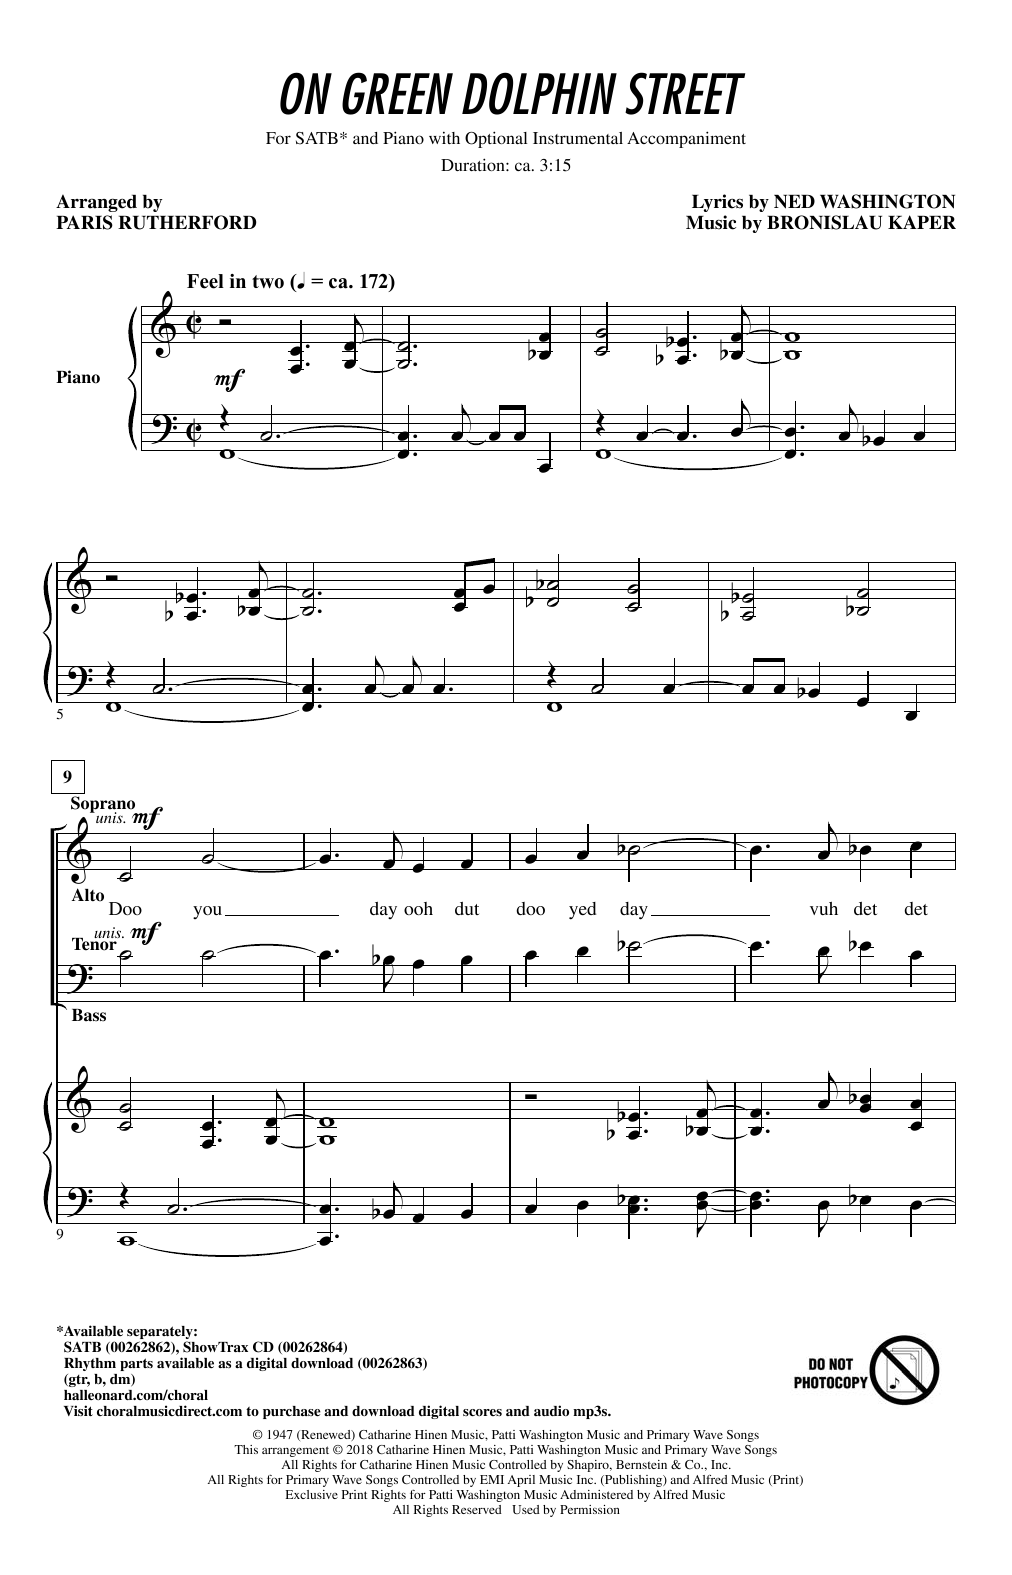 On Green Dolphin Street (SATB Choir)